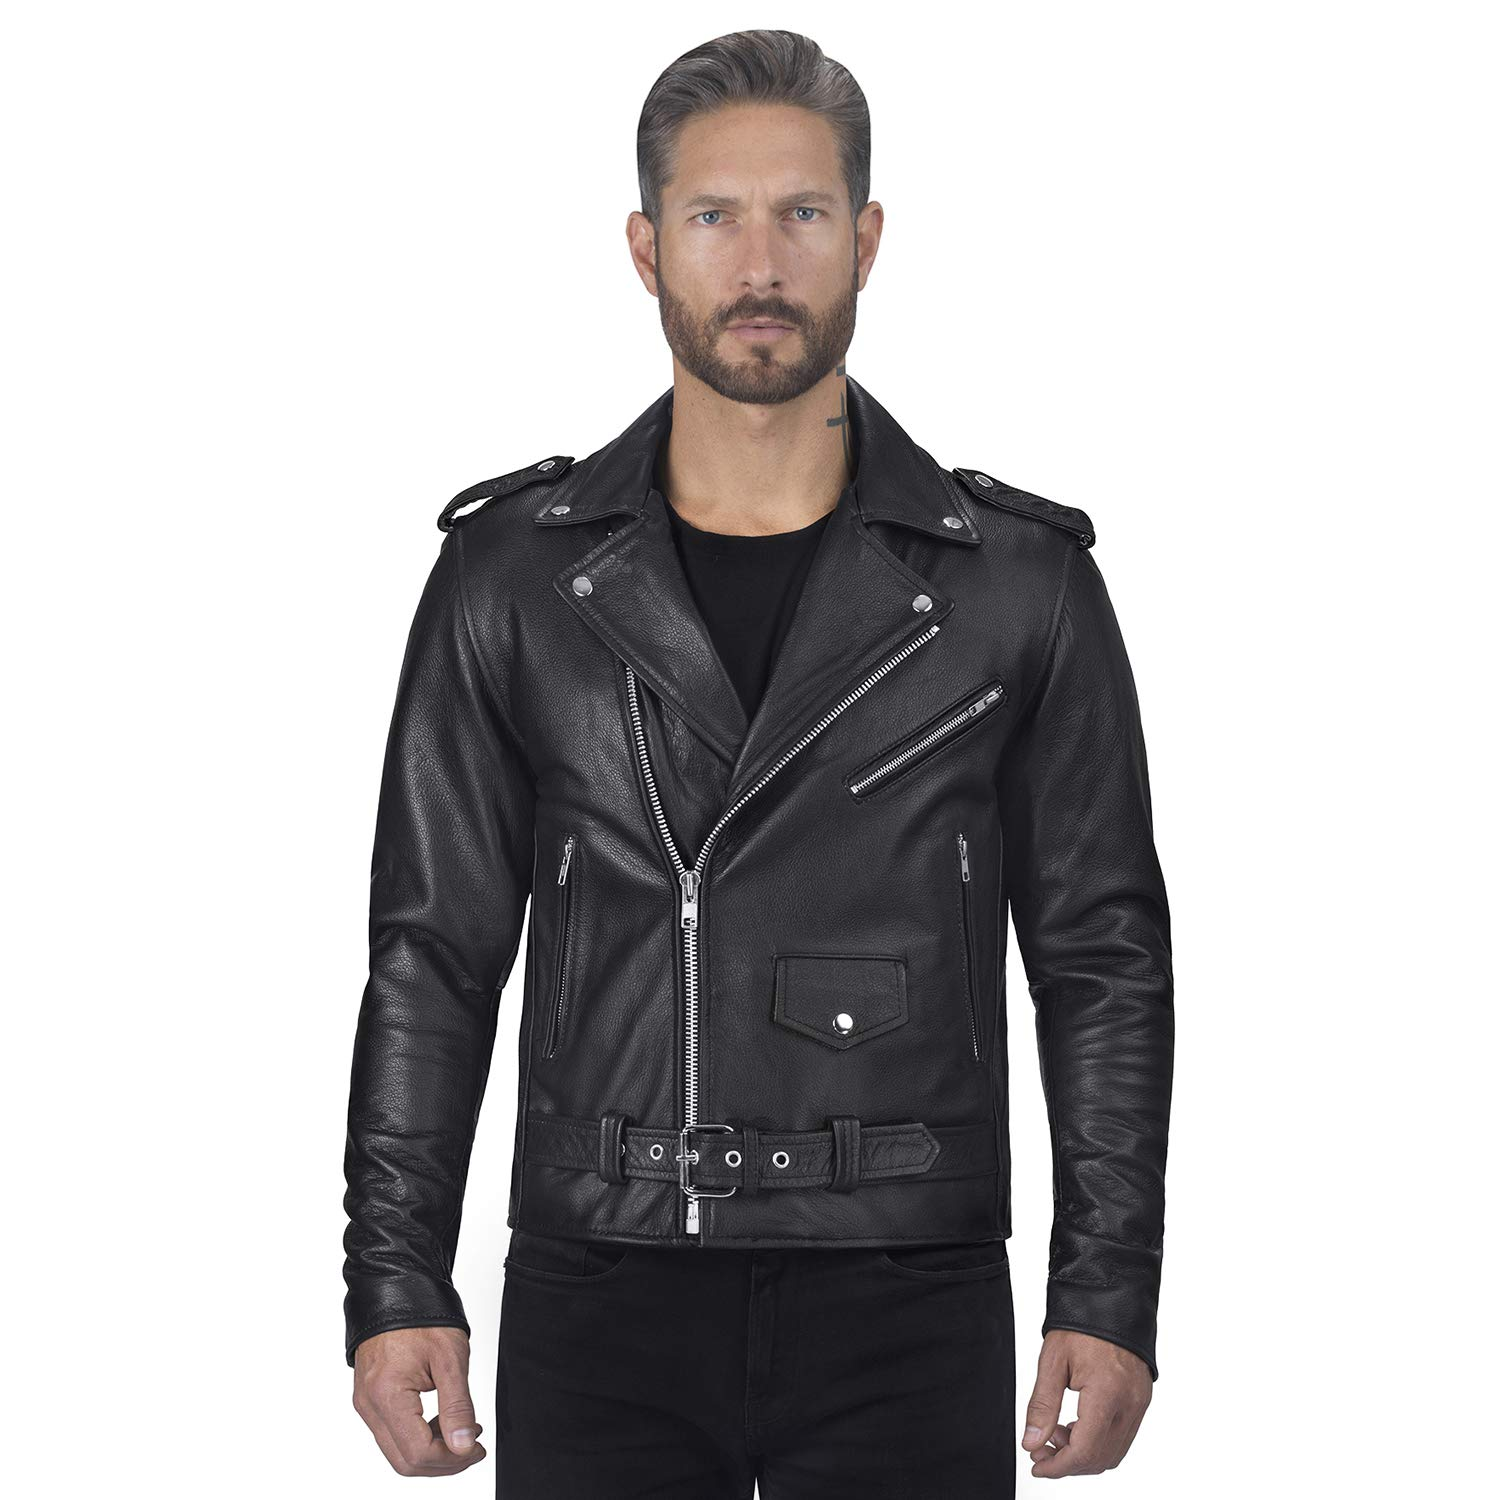 Viking Cycle Angel Fire Premium Grade Cowhide Leather Motorcycle Jacket for Men (X-Small) Black